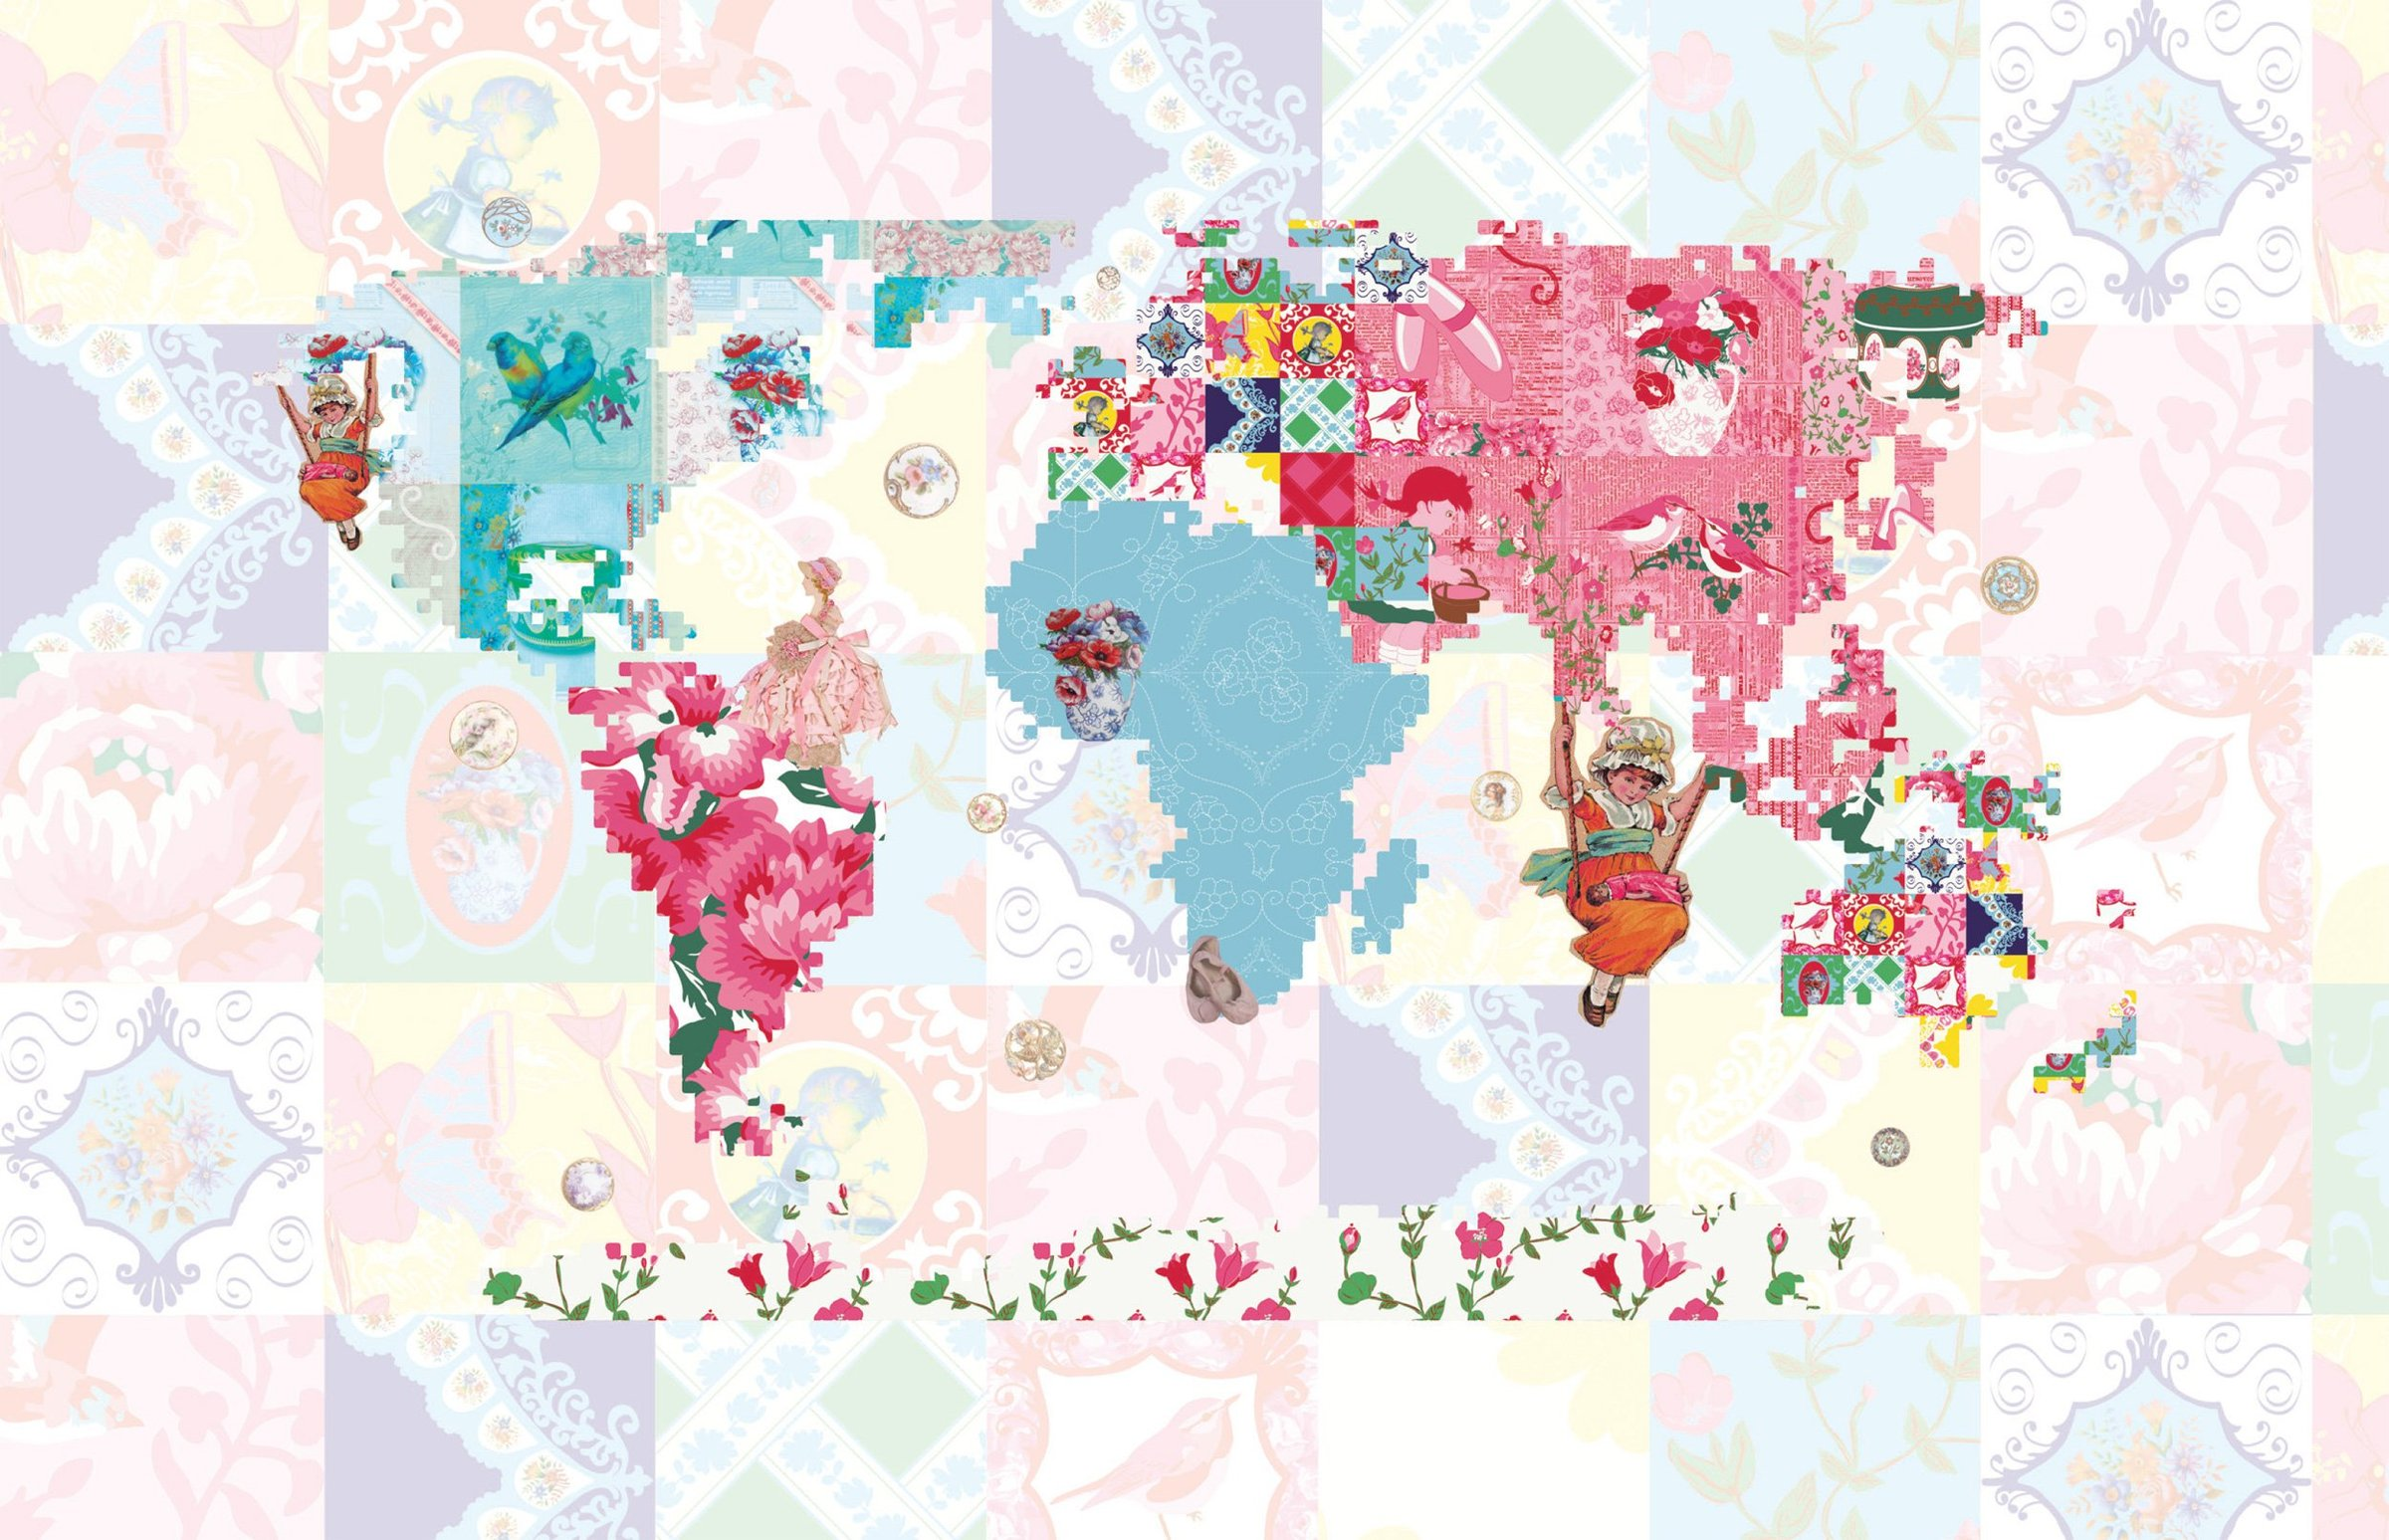 World Maps Childs World Map Wallpaper Map758015 - World Map Pink Wall Mural , HD Wallpaper & Backgrounds